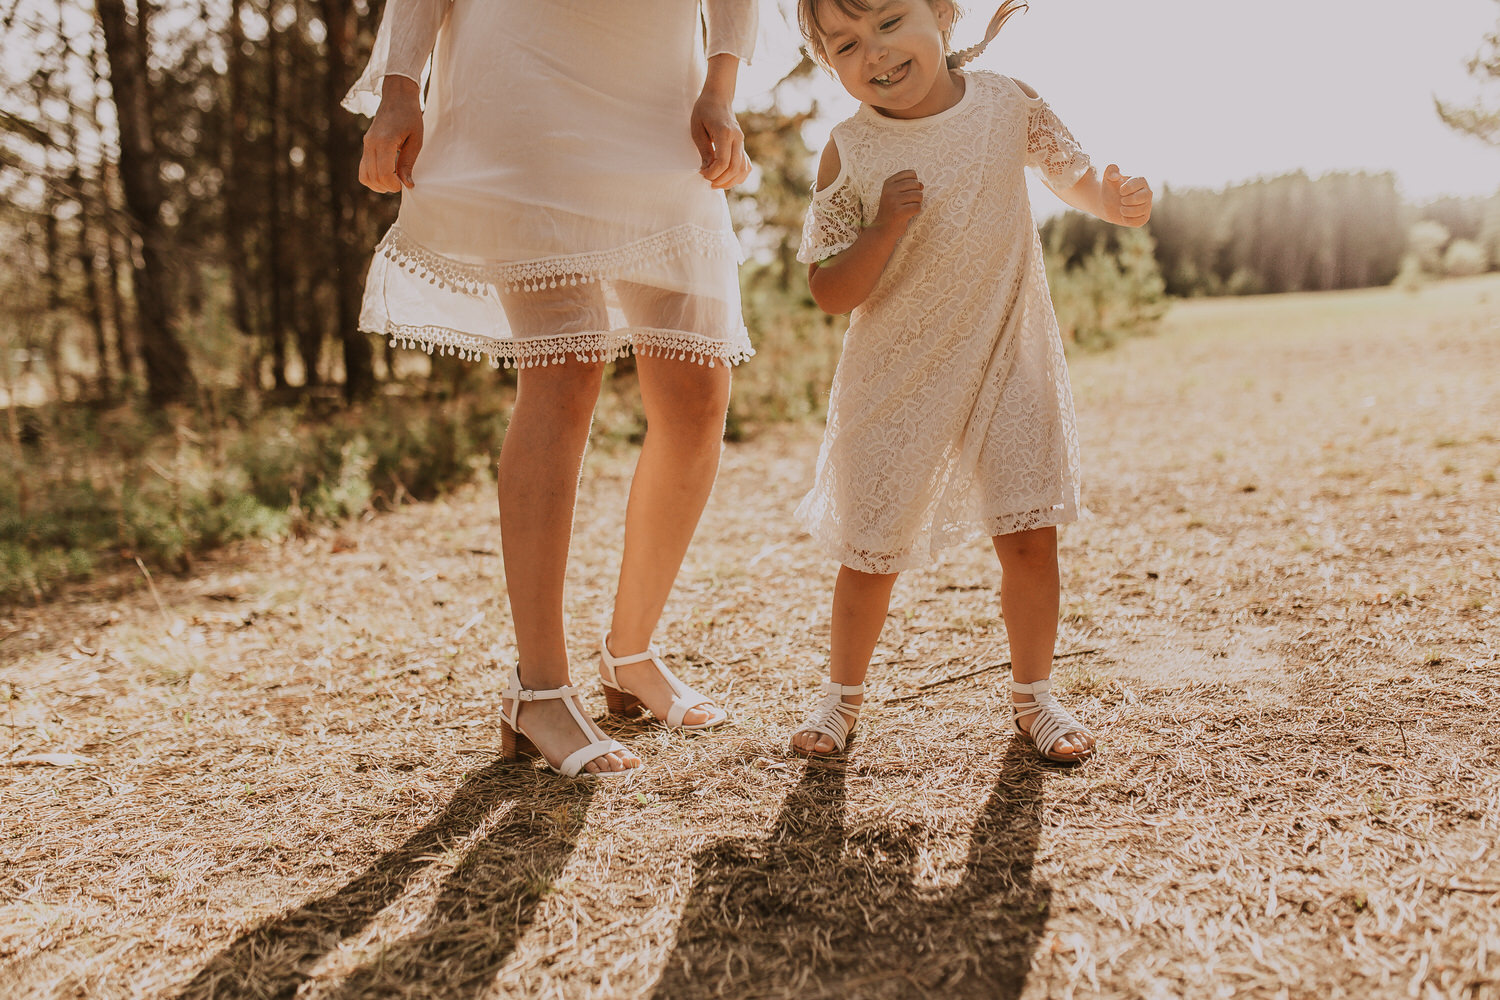 Chantal+Izzy_FamilySession_97.jpg